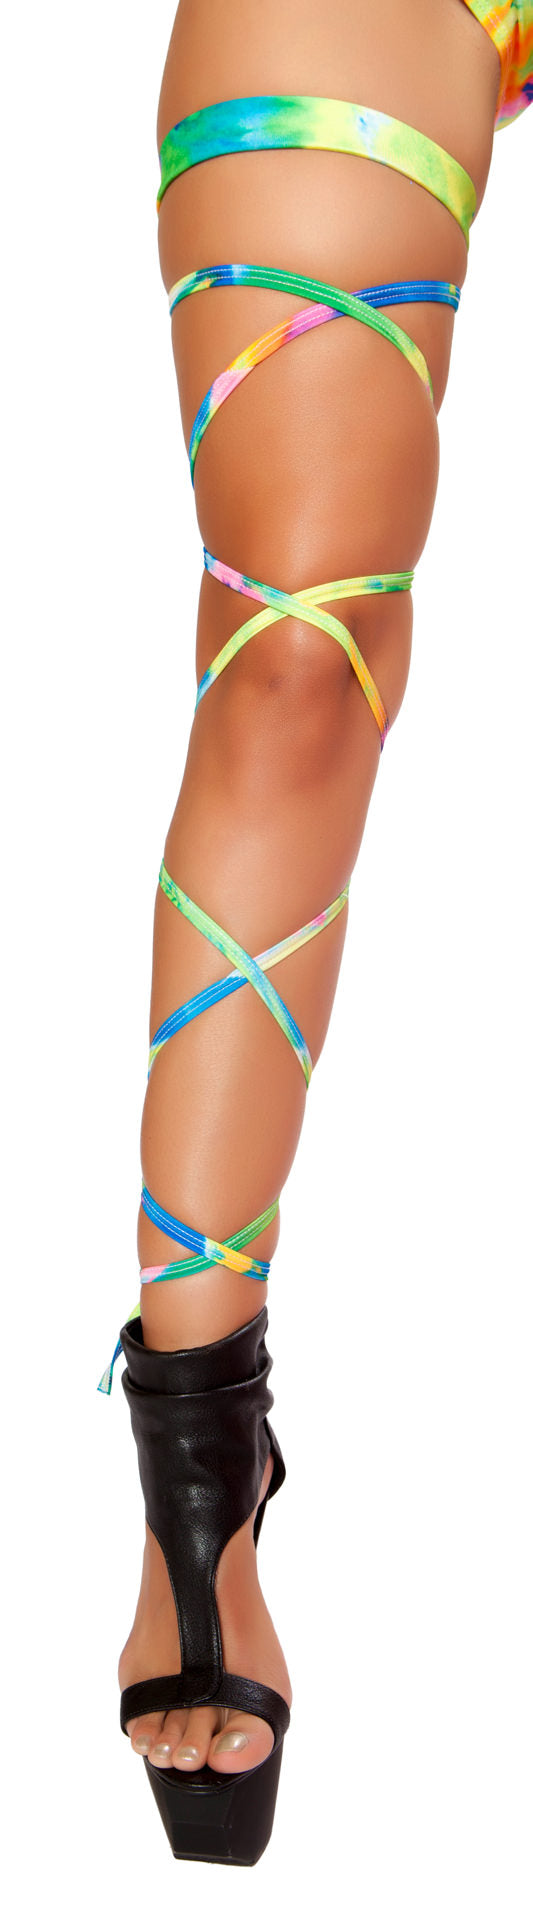 rainbow rave leg wraps with attached garter belt on a leg with platform heels